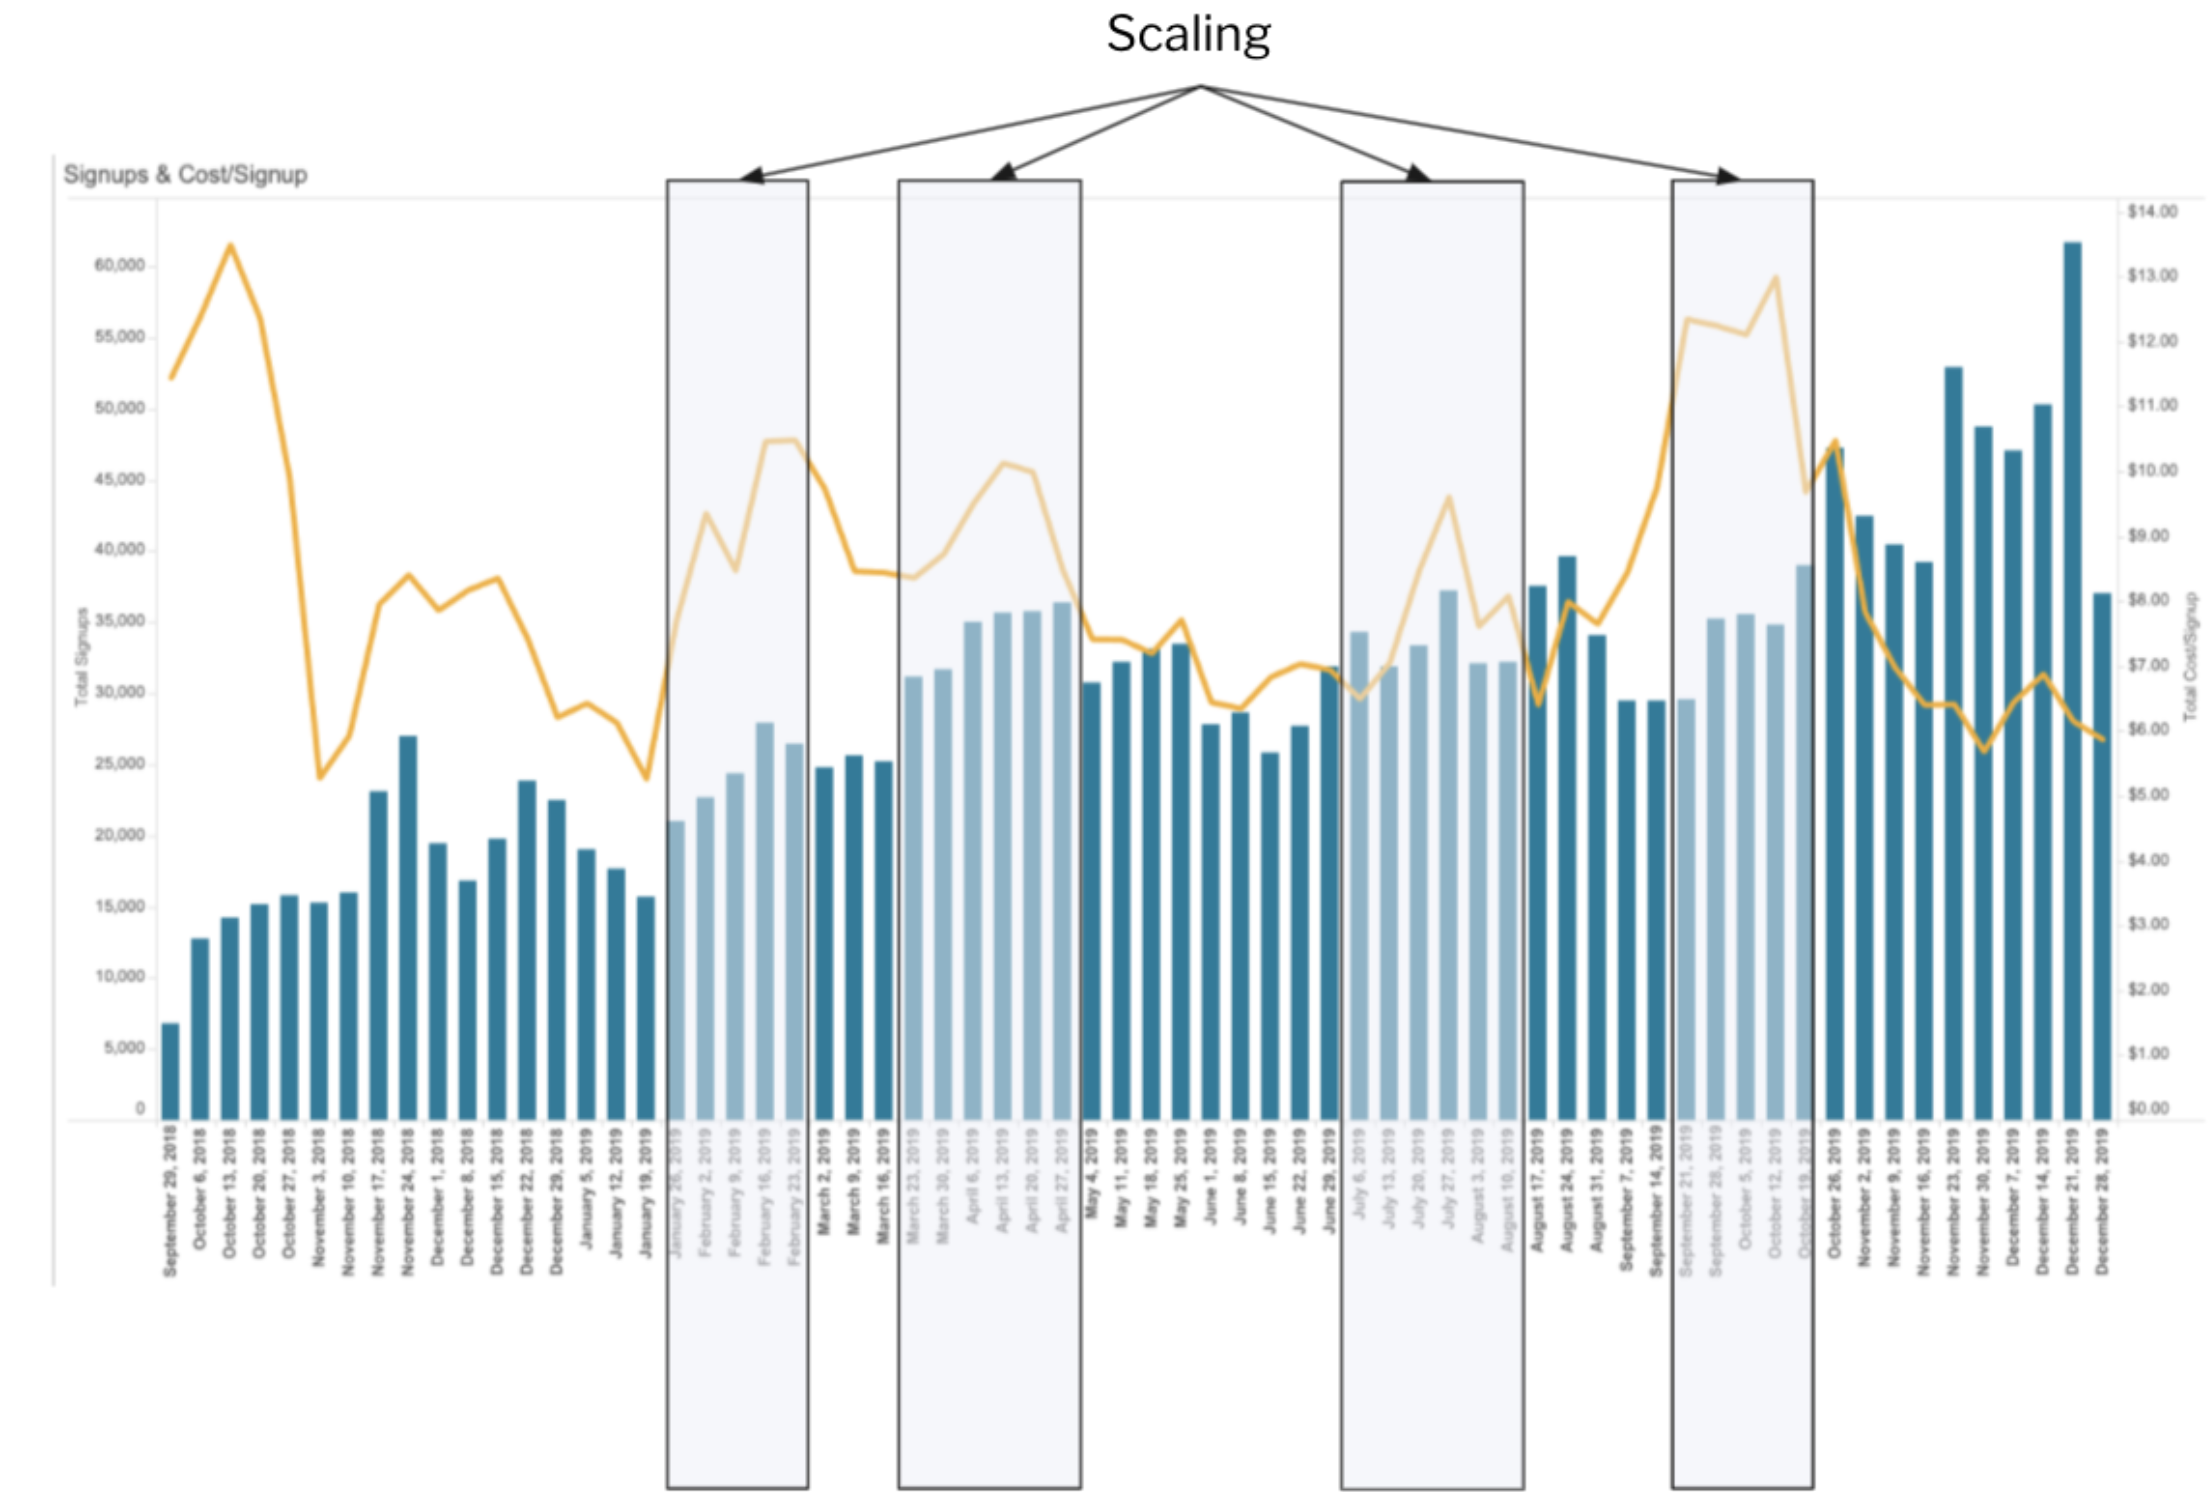 CPA fluctuations during scaling